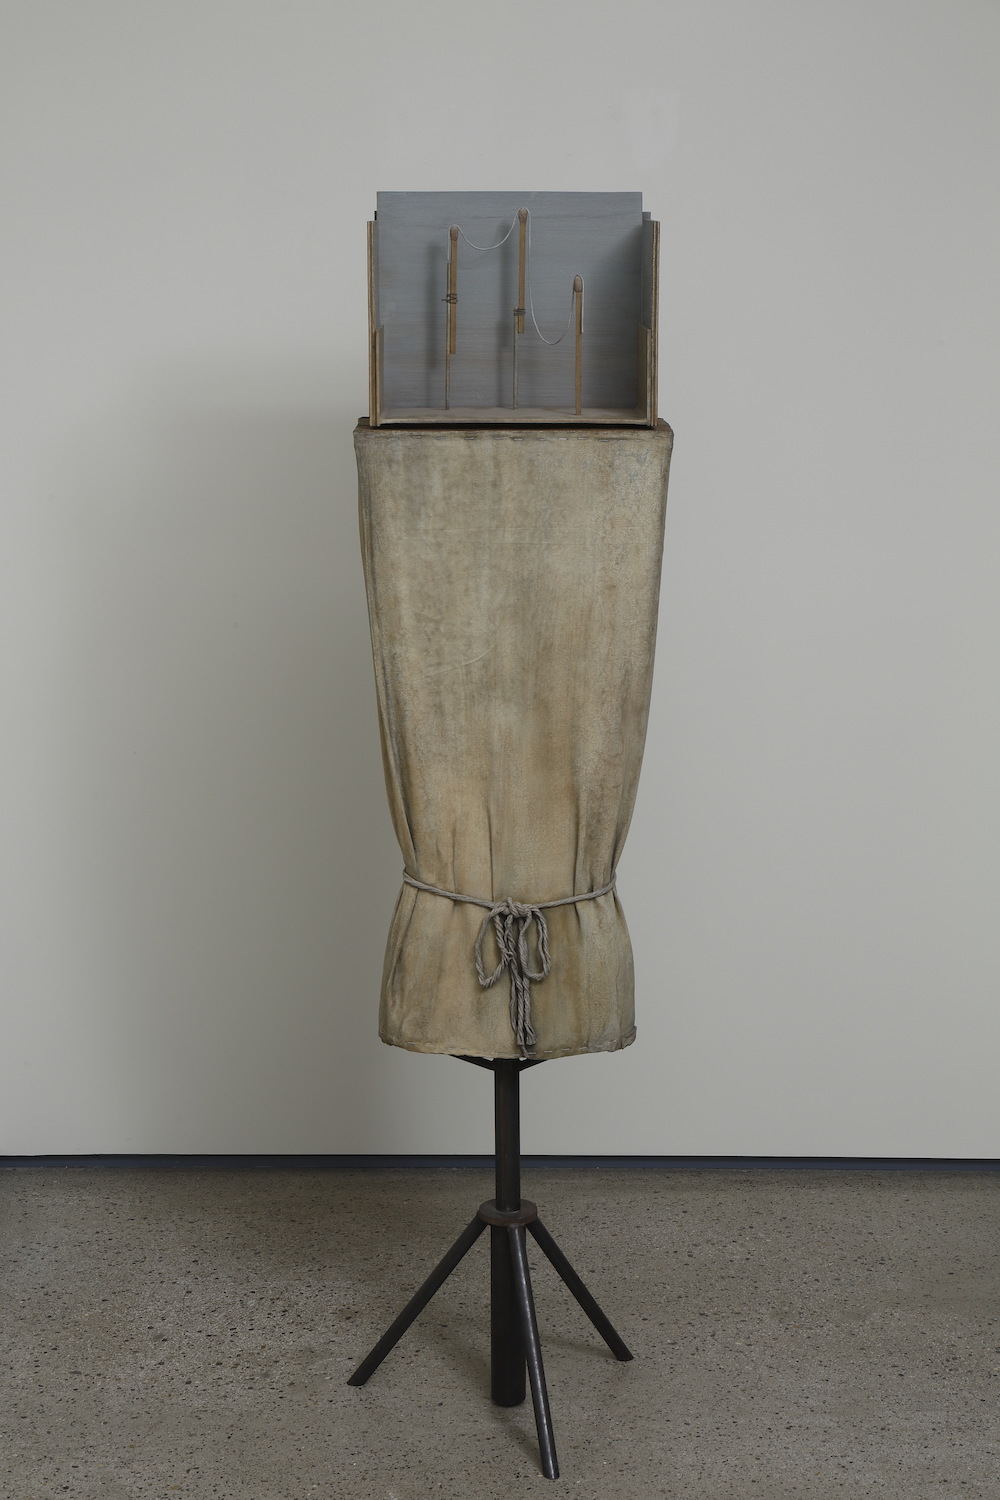 Mark Manders, Figure Study, 1997-2015, patinated and painted bronze 163.8 x 43.2 x 43.2 cm